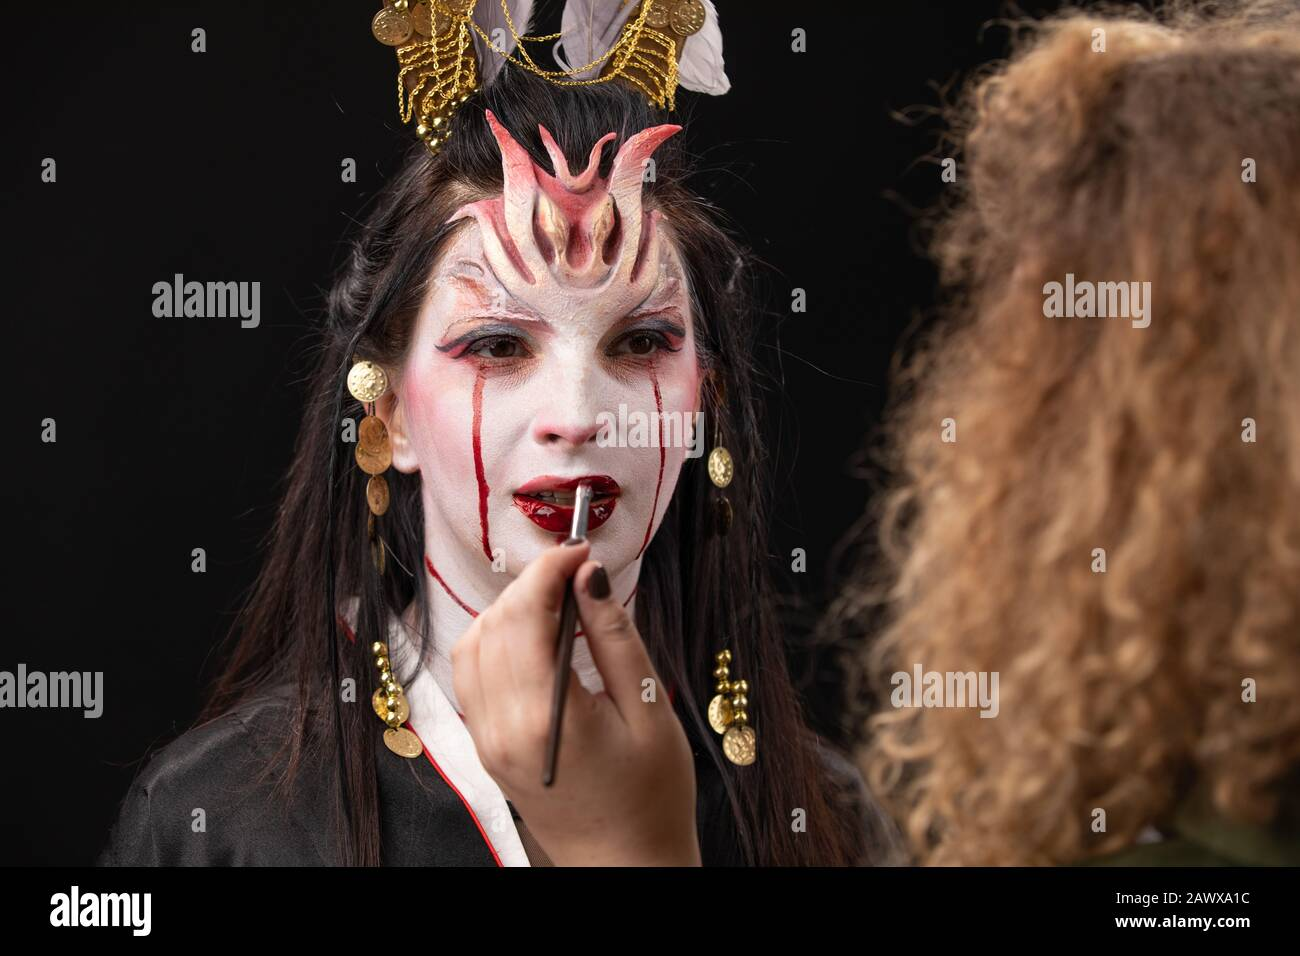 Witchcraft Asian woman in scary Witch ghost story look, mouth blood wound black long hair, studio lighting dark red background. makeup artist doing Stock Photo